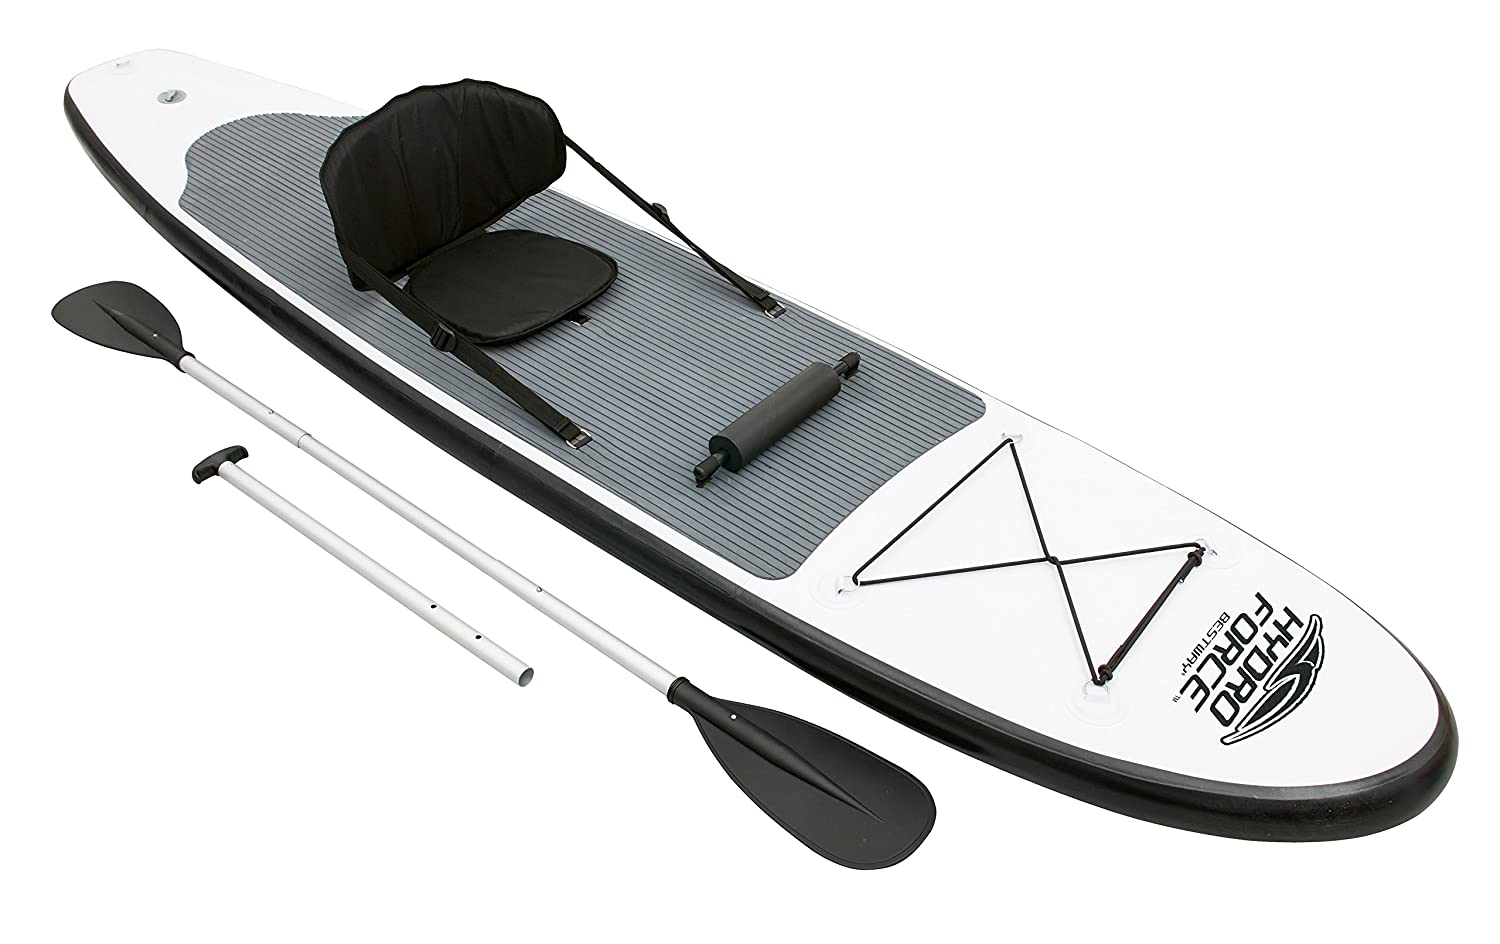 Bestway 65054 - Tabla Paddle Surf Bestway WaveEdge SUP & Kayak (310 x 68 x 10 cm) - Remo de aluminio, asiento ajustable, bolsa de transporte e ...